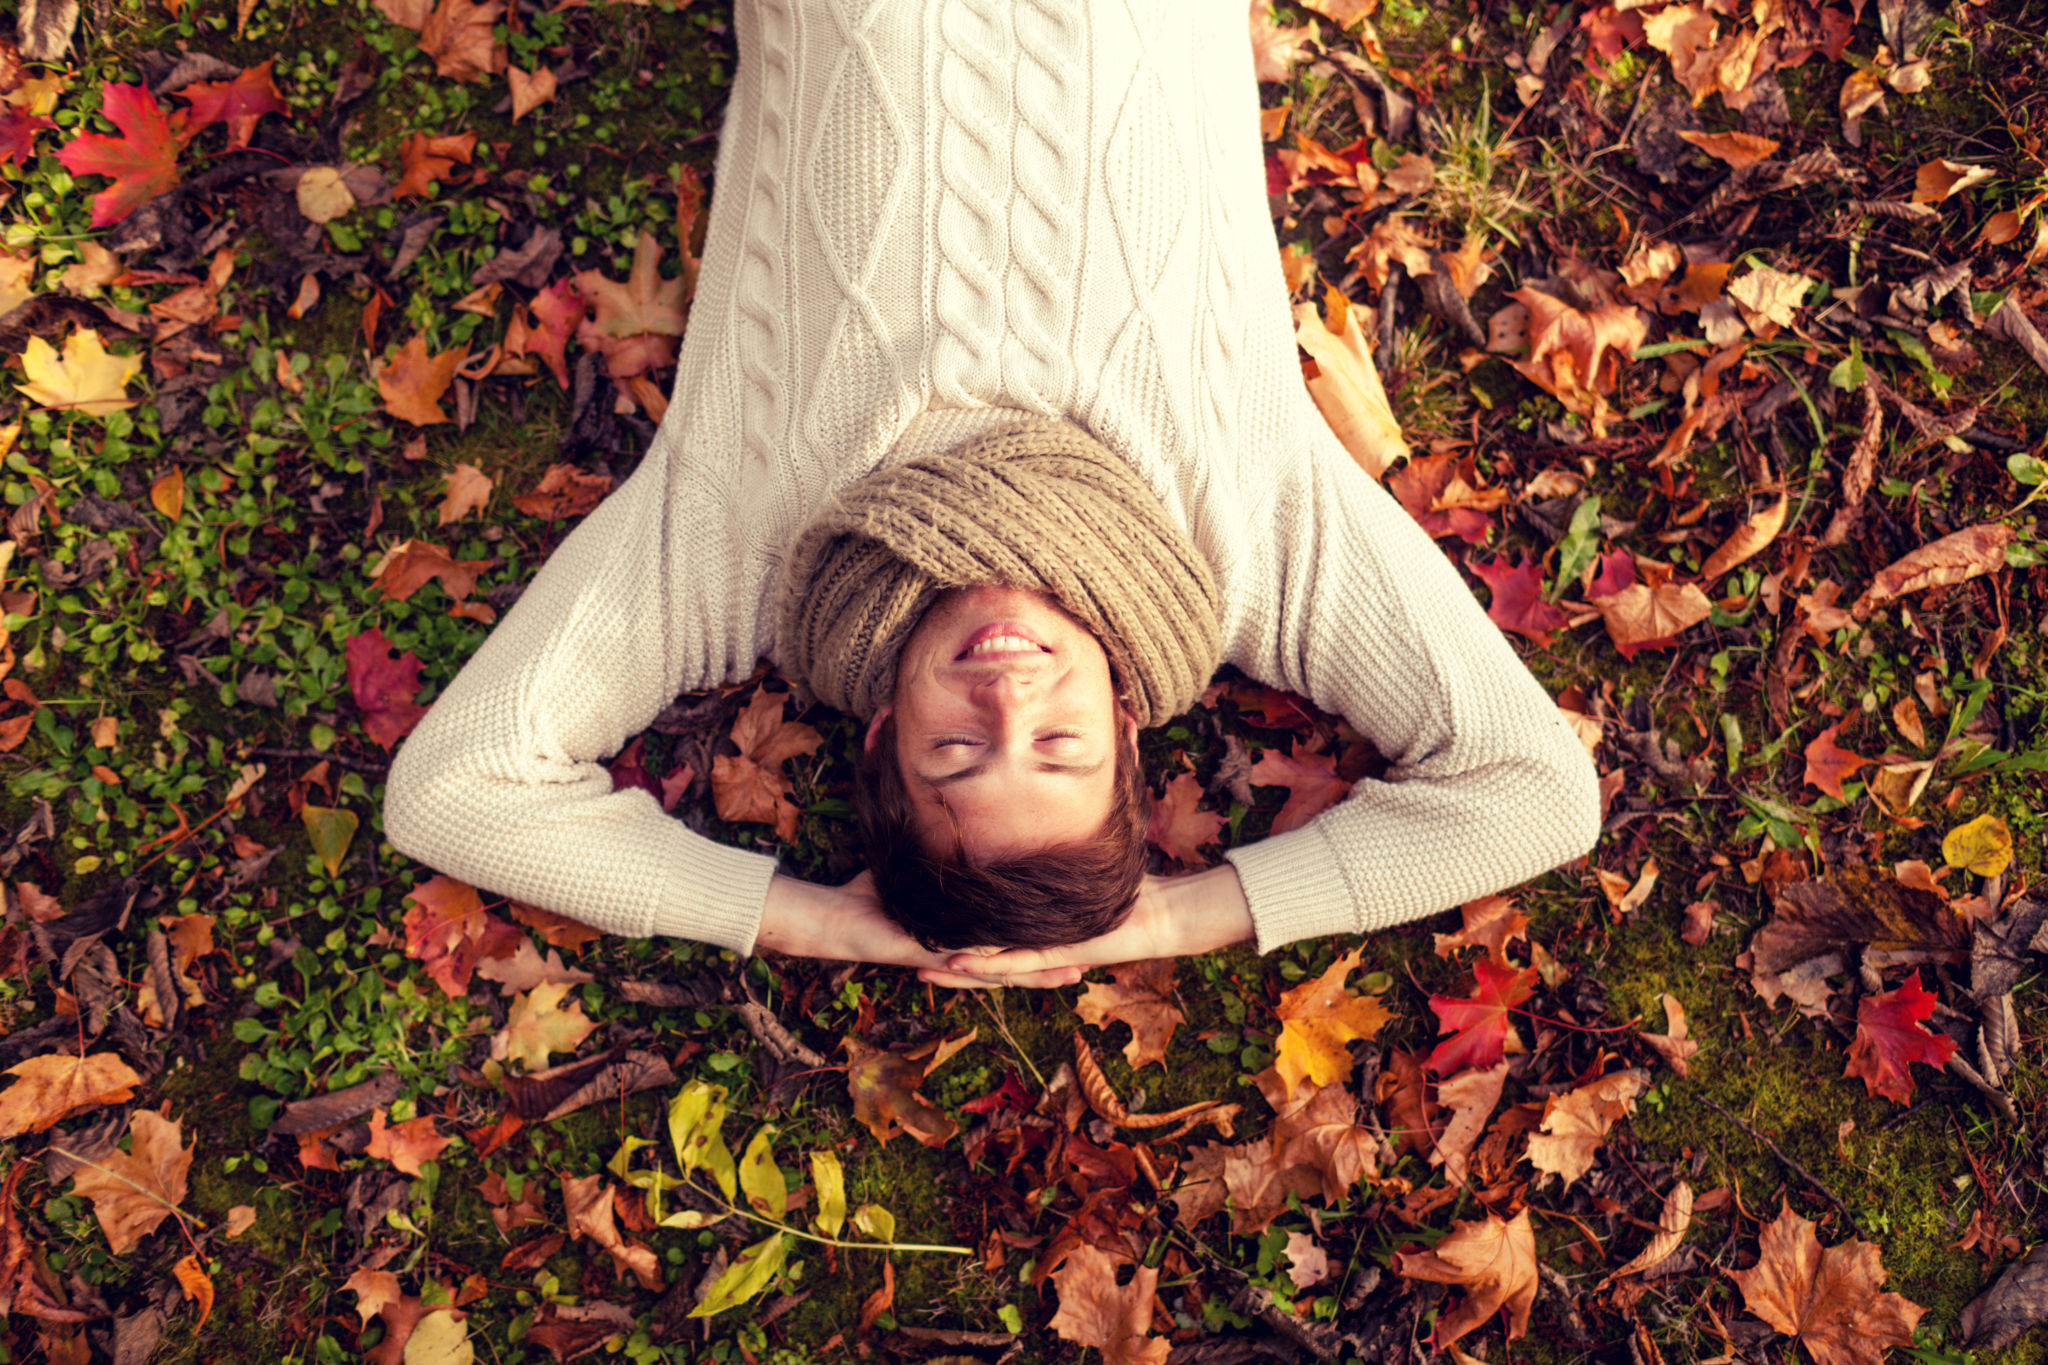 Man in scarf and sweater, lying in the fall leaves